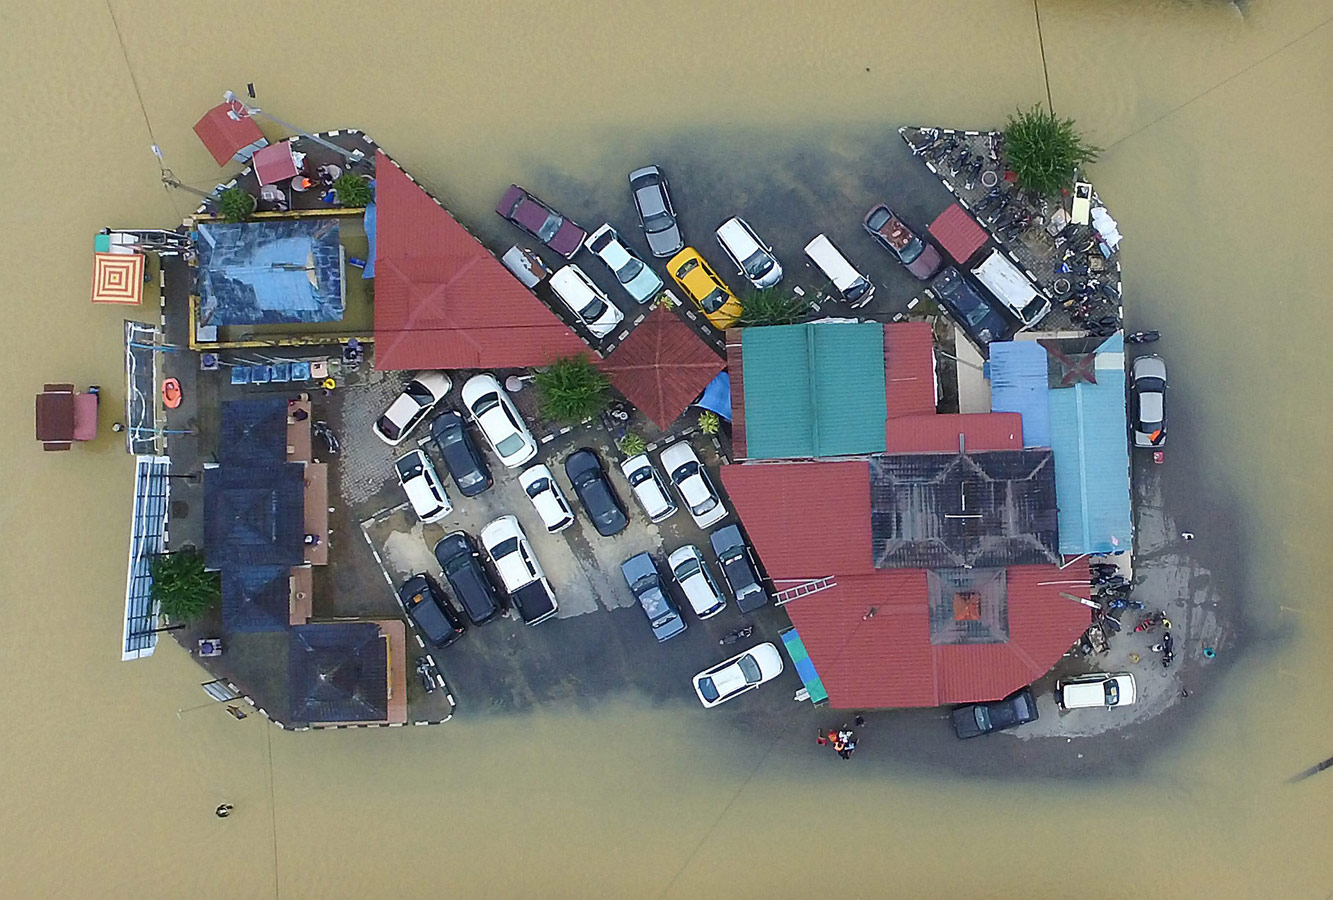 Avoid Floodwaters / Malaysia, © Muhamed Fathil Asri / New Straits Times Press, Malaysia, Single Nature & Environment 1st Prize, Istanbul Photo Awards